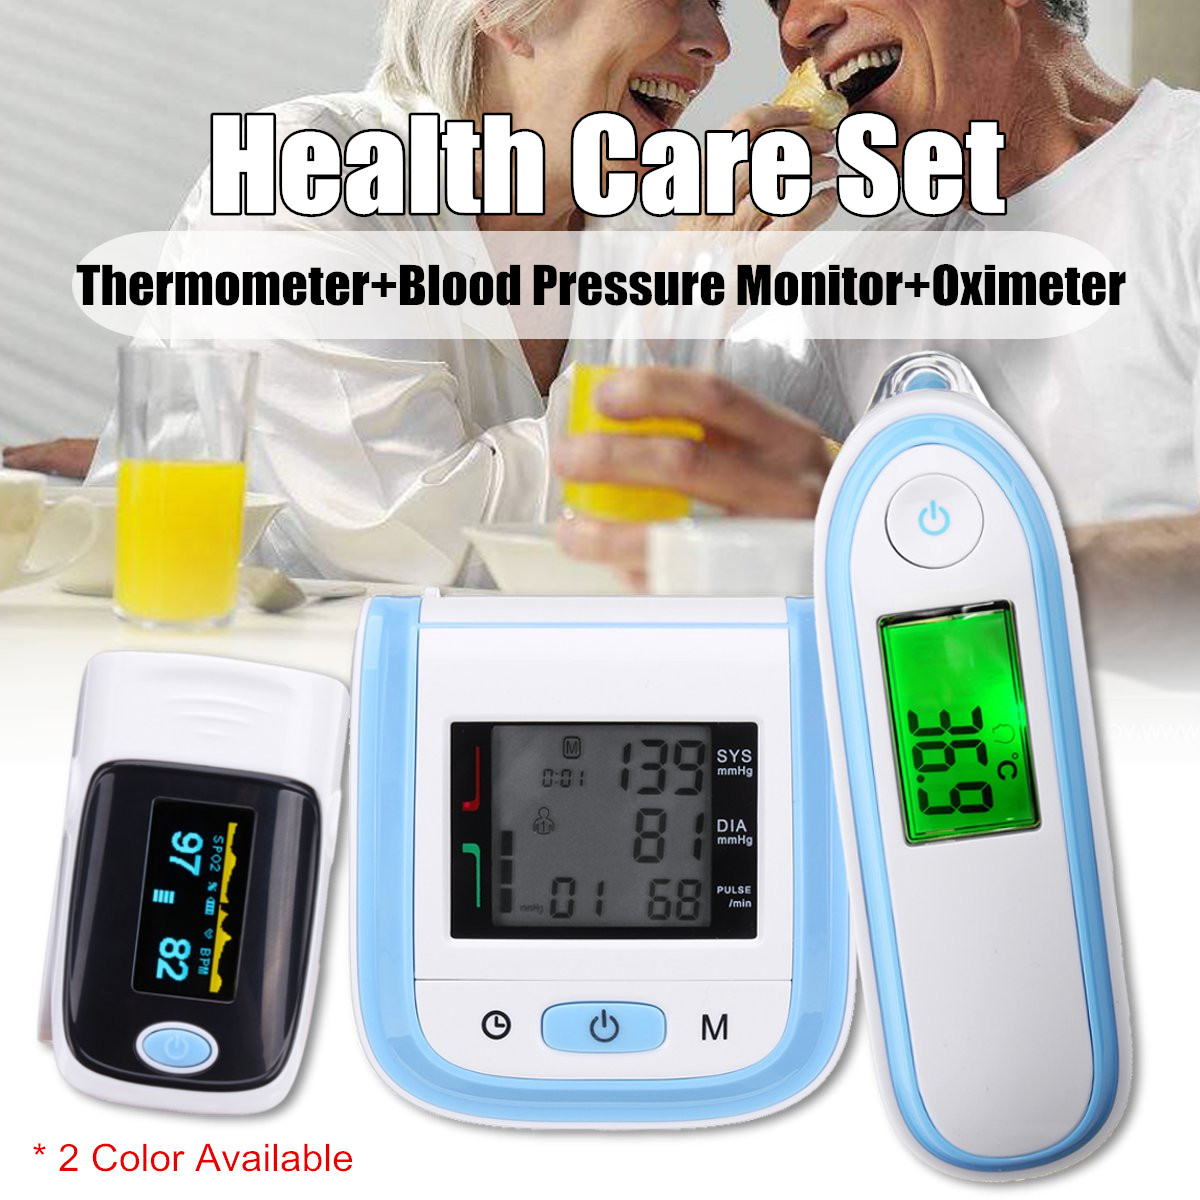 Digital Thermometer Fingertip Pulse Oximeter Wrist Blood Pressure Monitor Infrared Body Thermometer